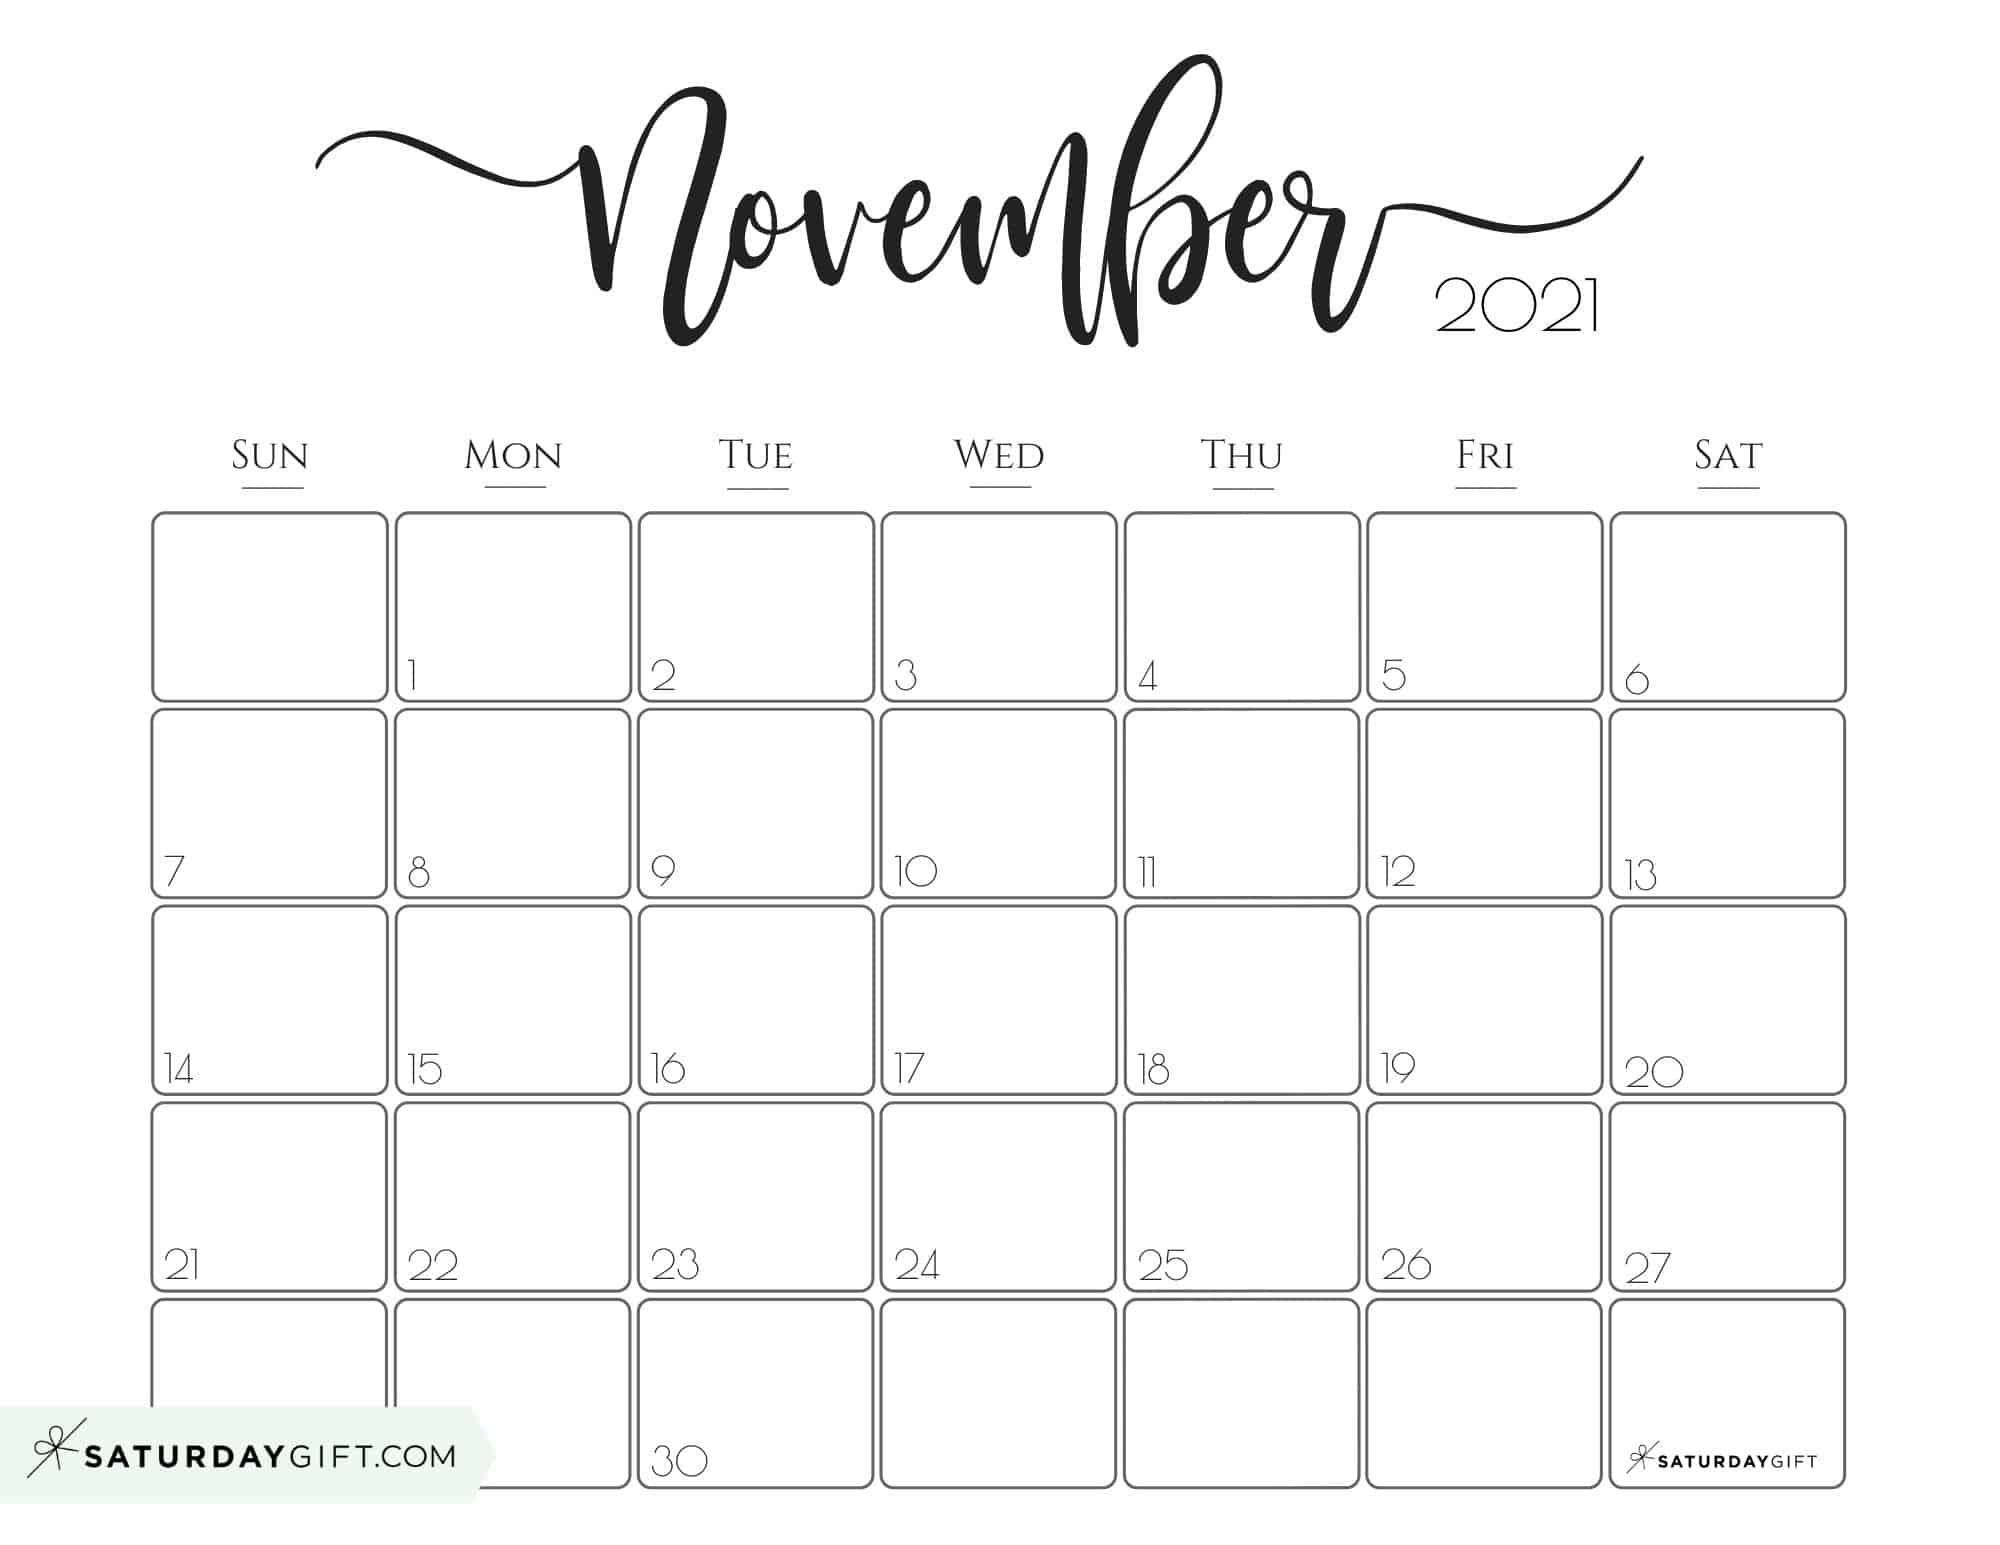 Printable November Calendar 2021 Elegant 2021 Calendar by SaturdayGift   Pretty Printable Monthly